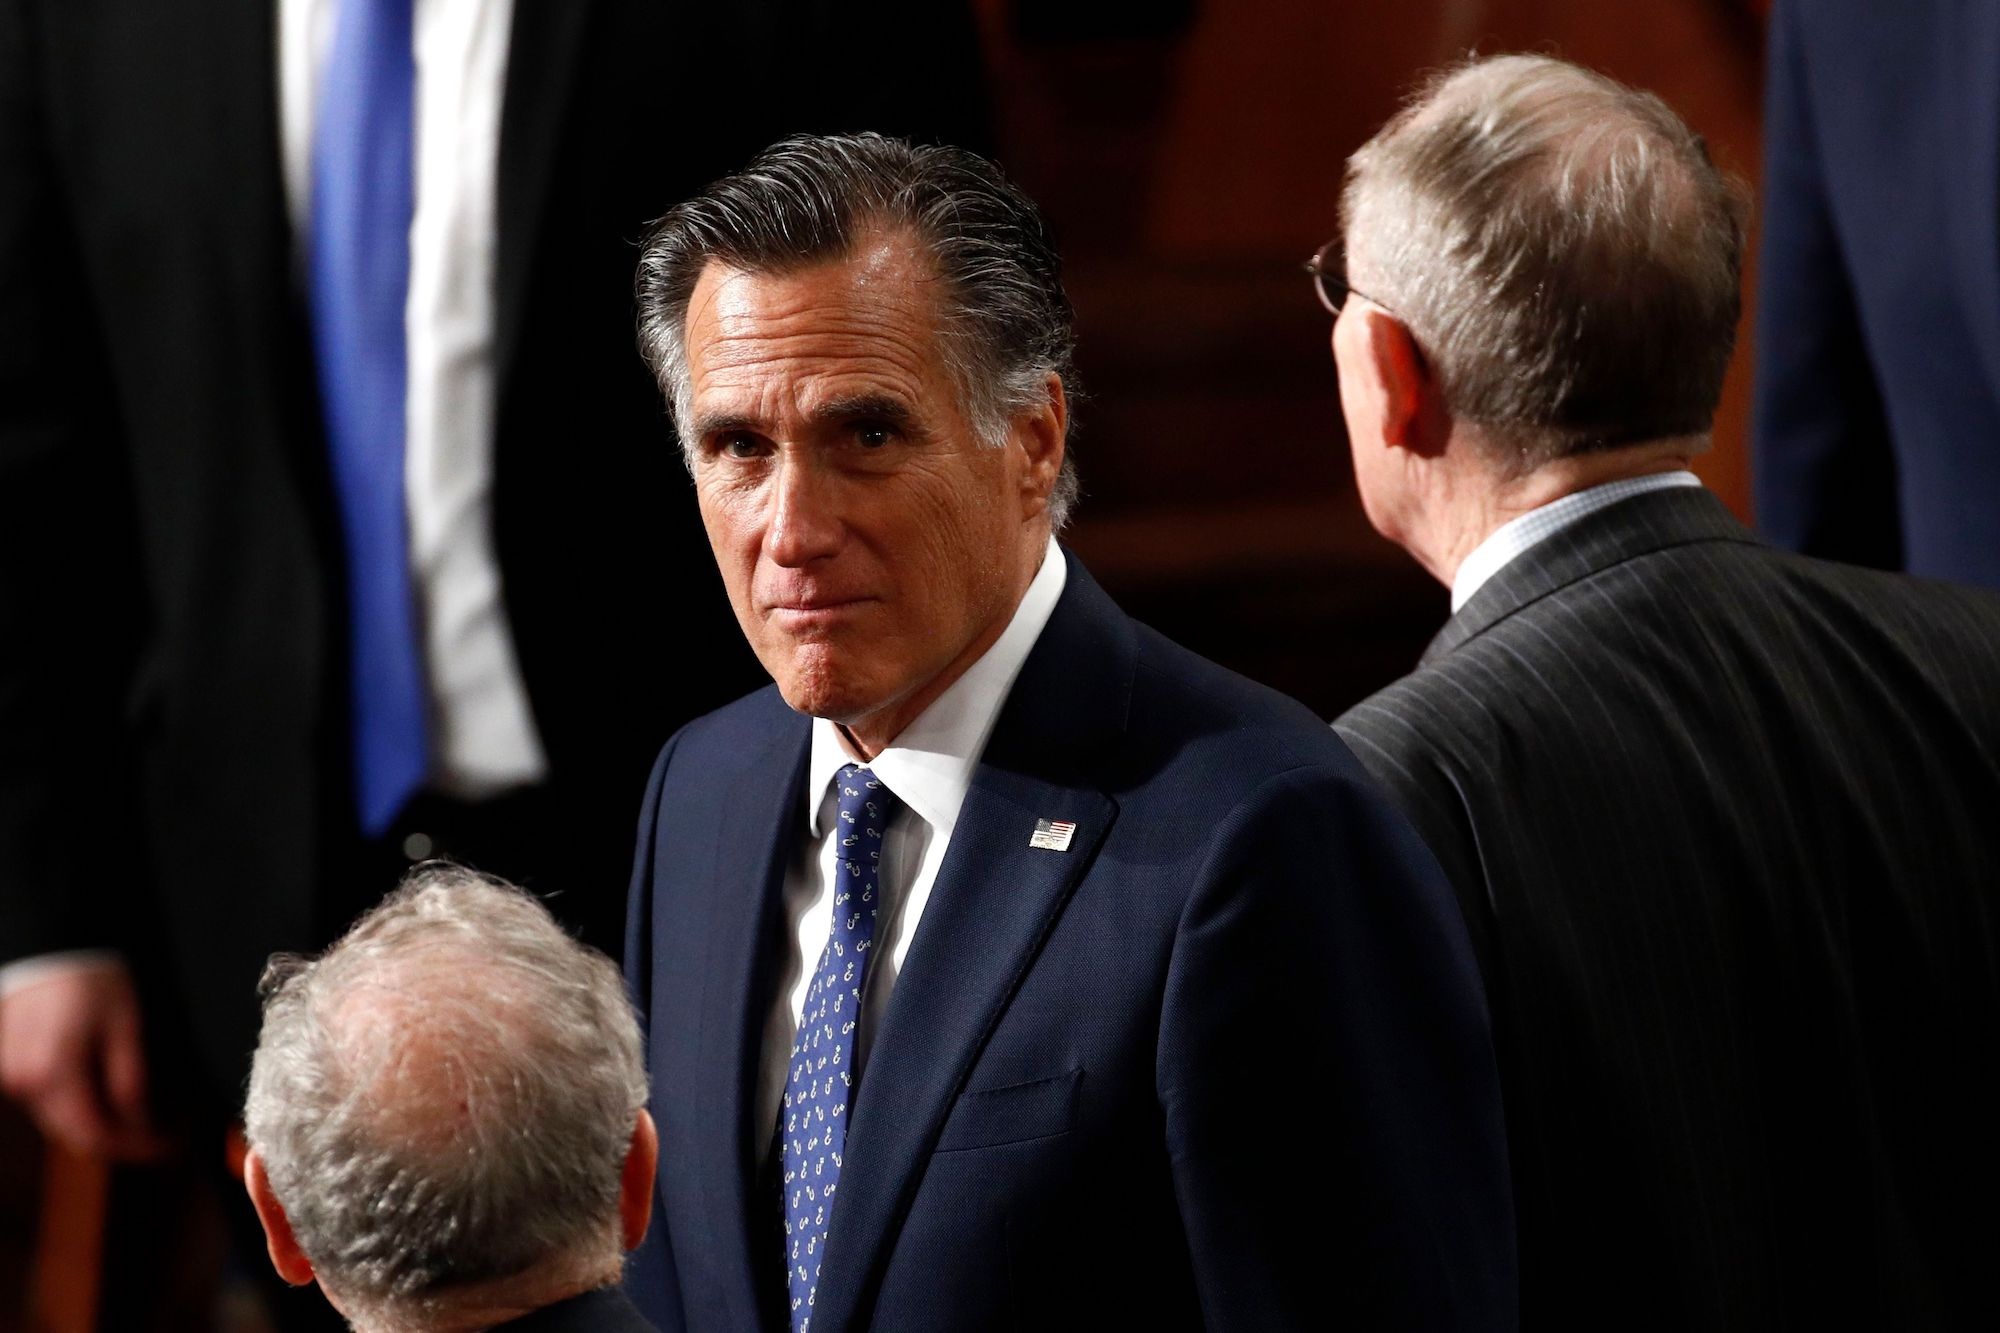 With Romney's Vote to Allow Subpoena, Burisma 2020 Has Officially Begun